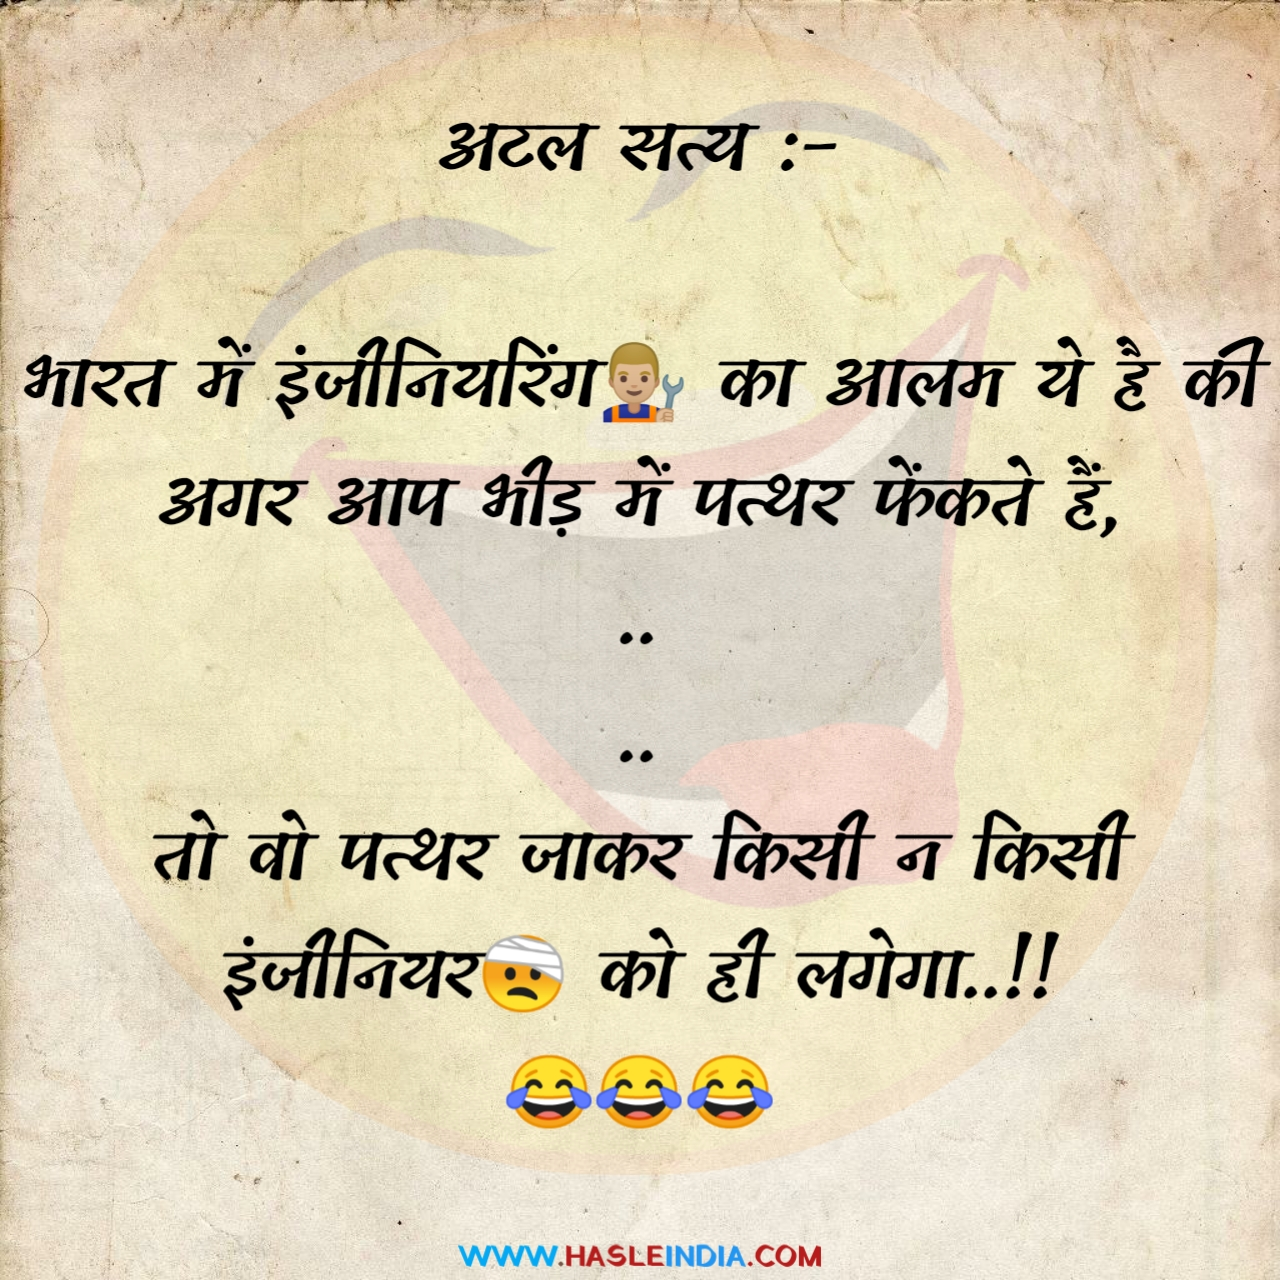 computer engineering jokes,engineer jokes,engineering jokes,engineering jokes hindi,funny hindi jokes,Hasle india,hindi chutkule,hindi joke sms,Hindi jokes,hindi jokes images,hindi jokes pic,jokes in hindi,jokes on engineer,